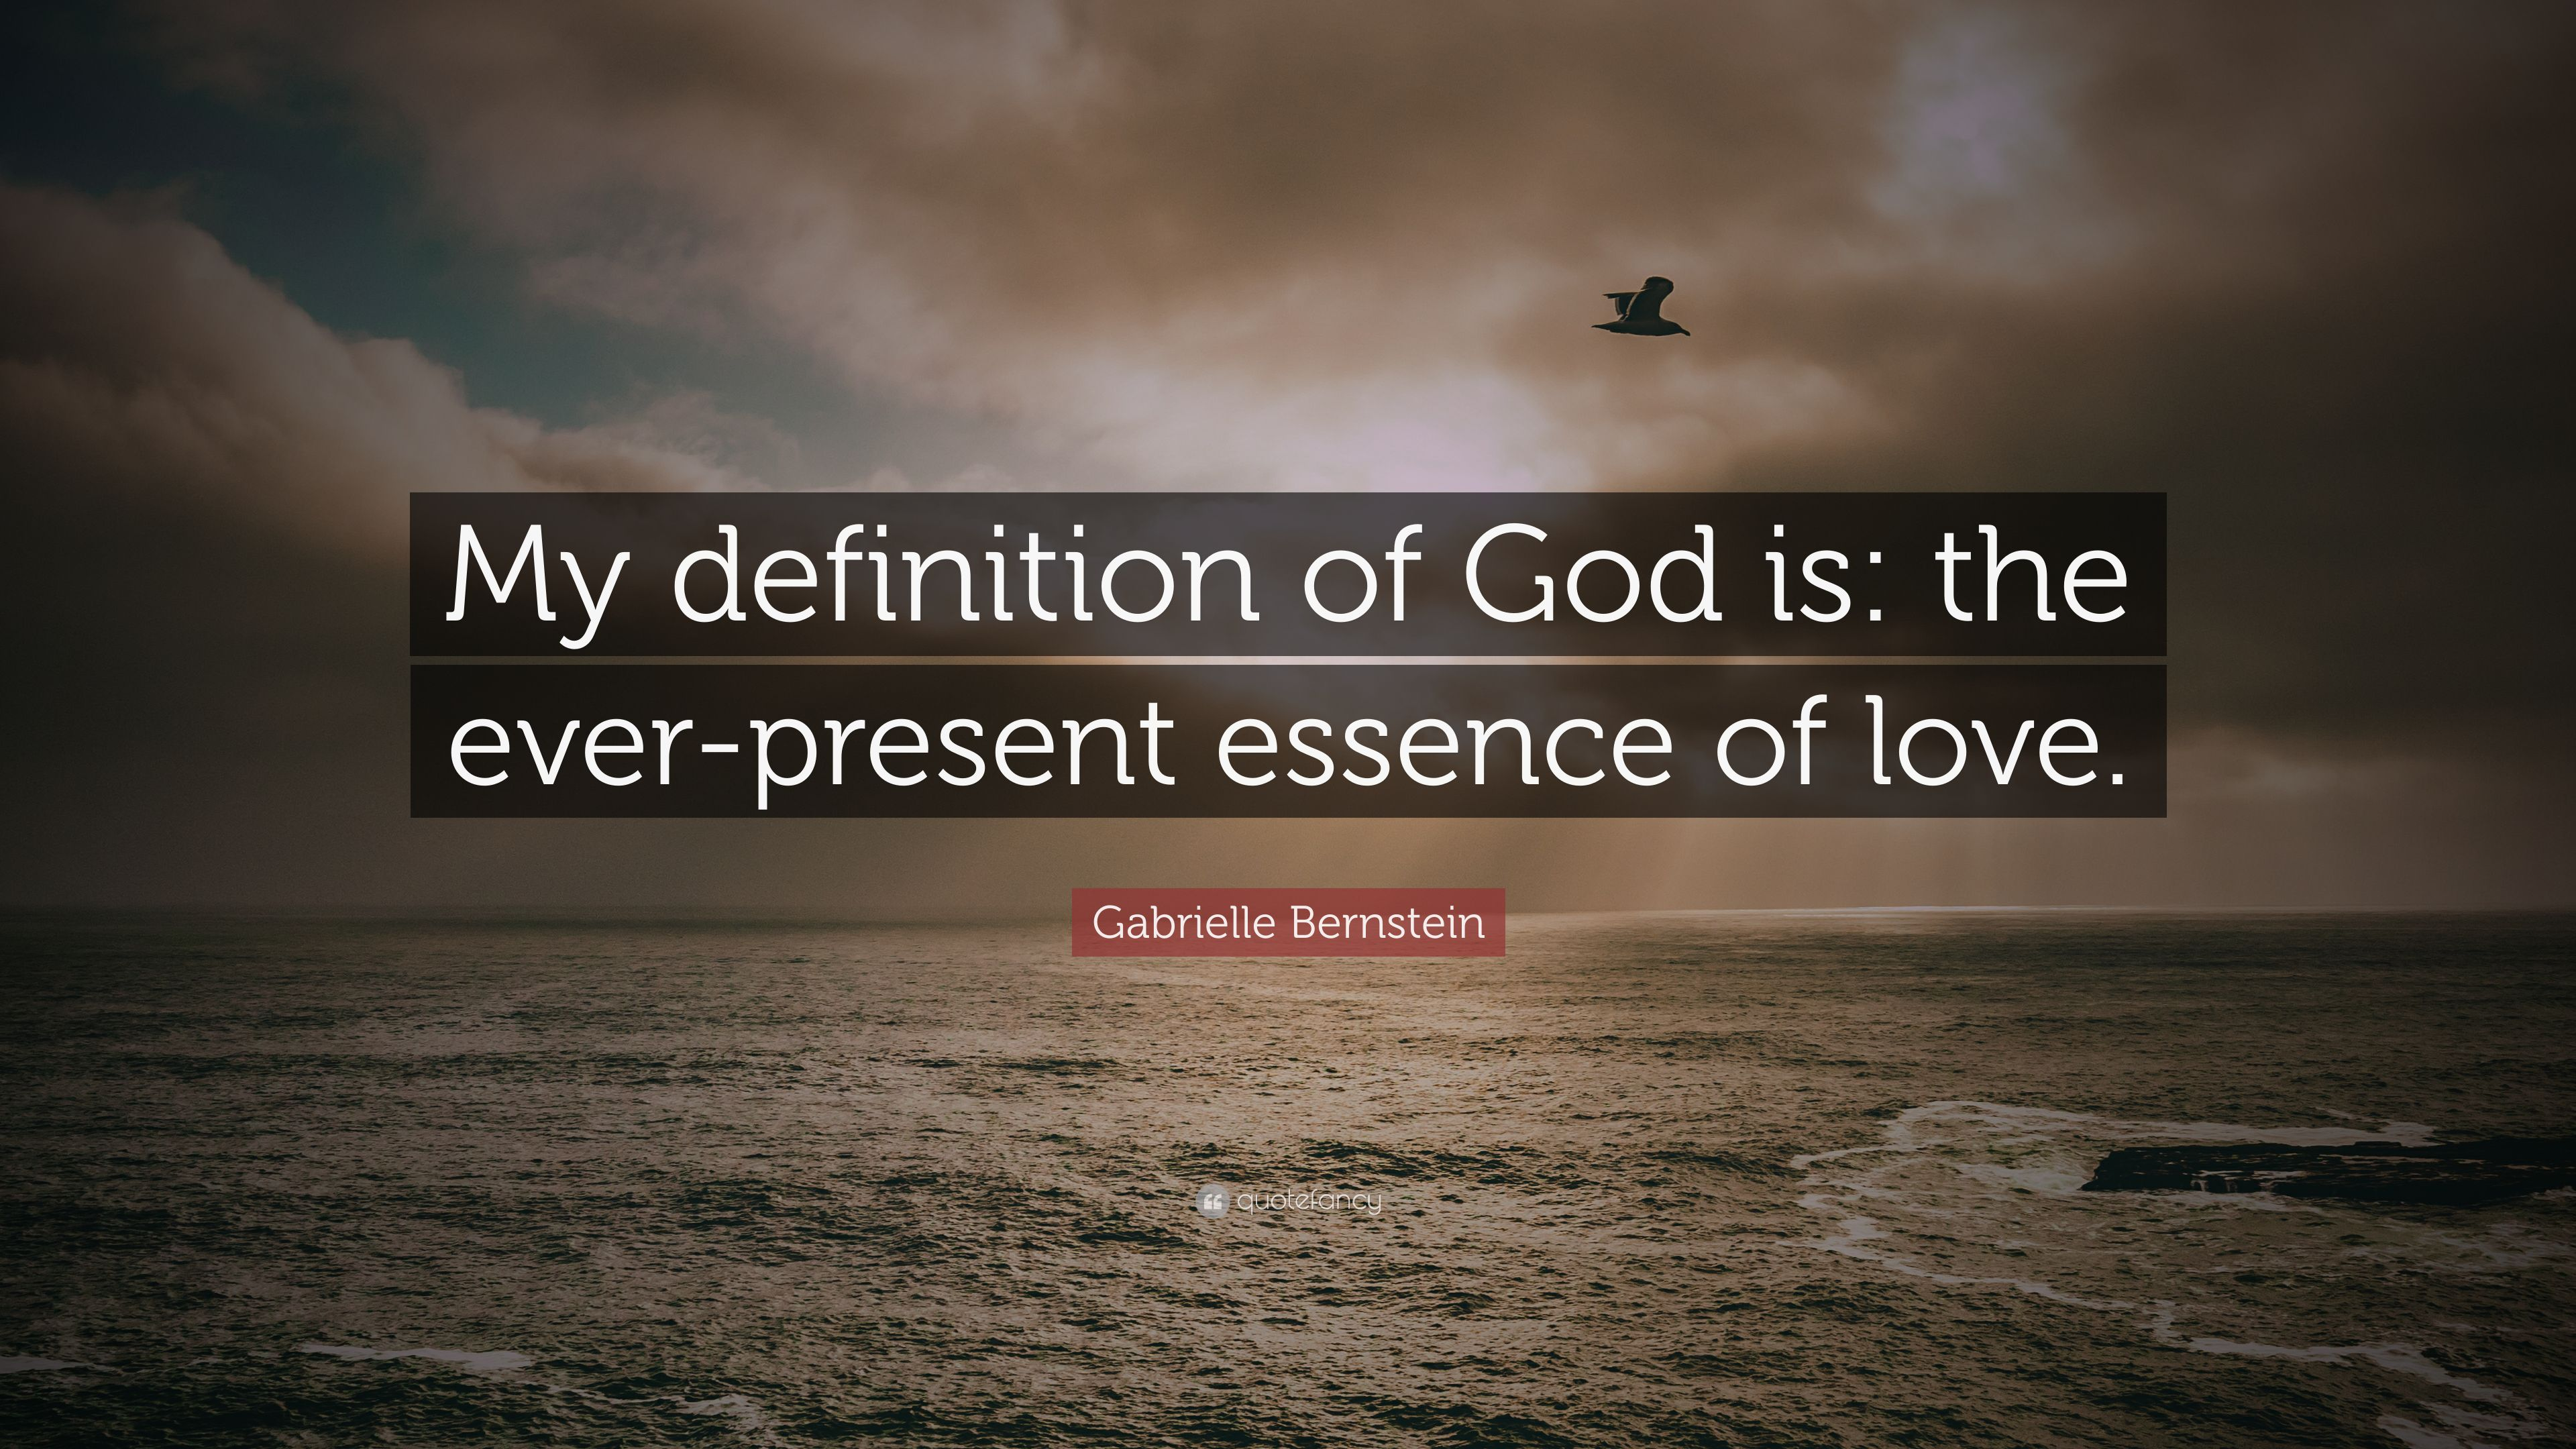 Gabrielle Bernstein Quote: U201cMy Definition Of God Is: The Ever Present  Essence